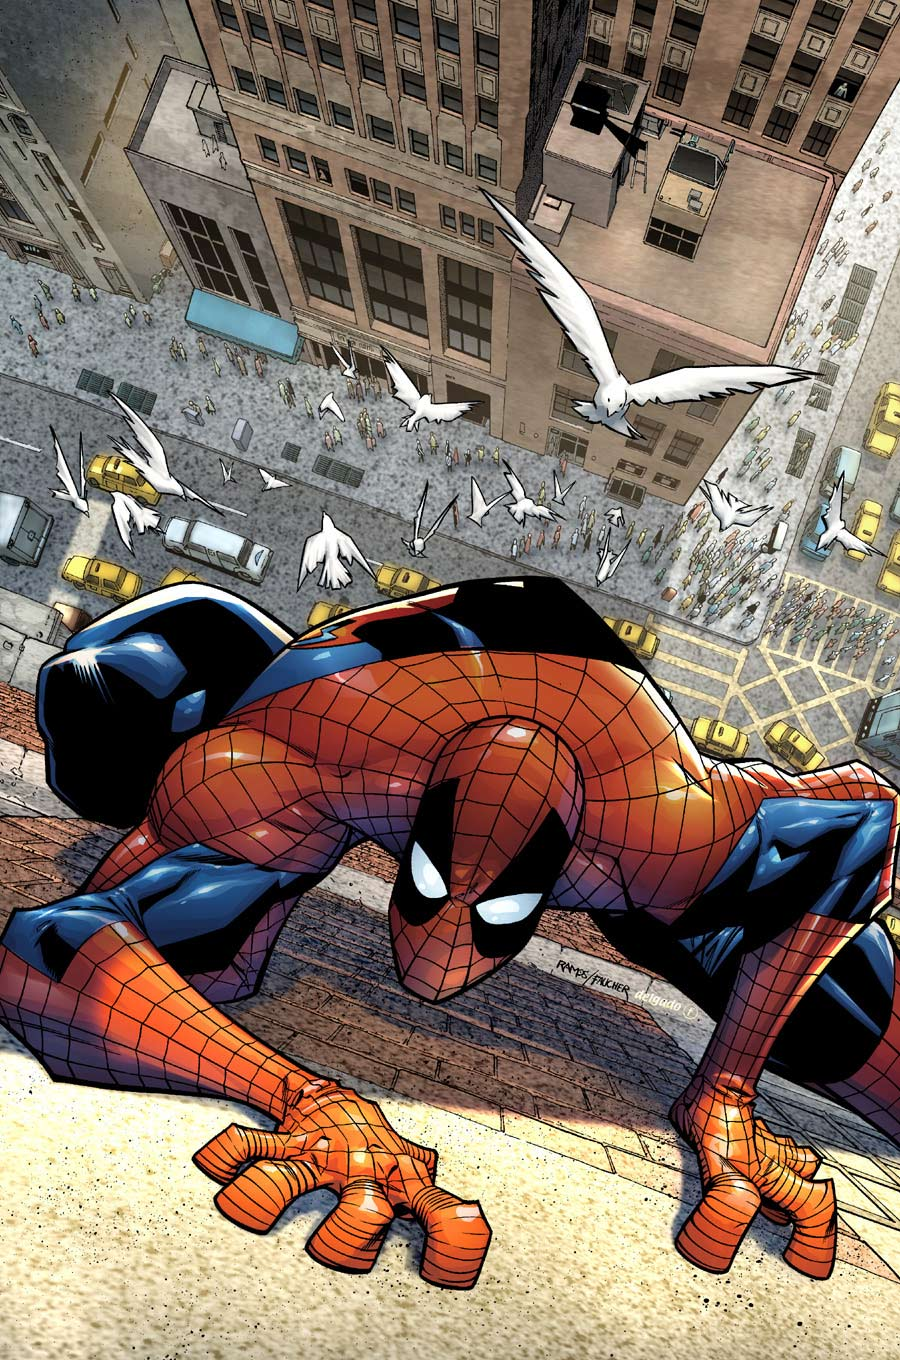 https://i1.wp.com/comicartcommunity.com/gallery/data/media/310/Spectacular_Spiderman_cvr_3.jpg